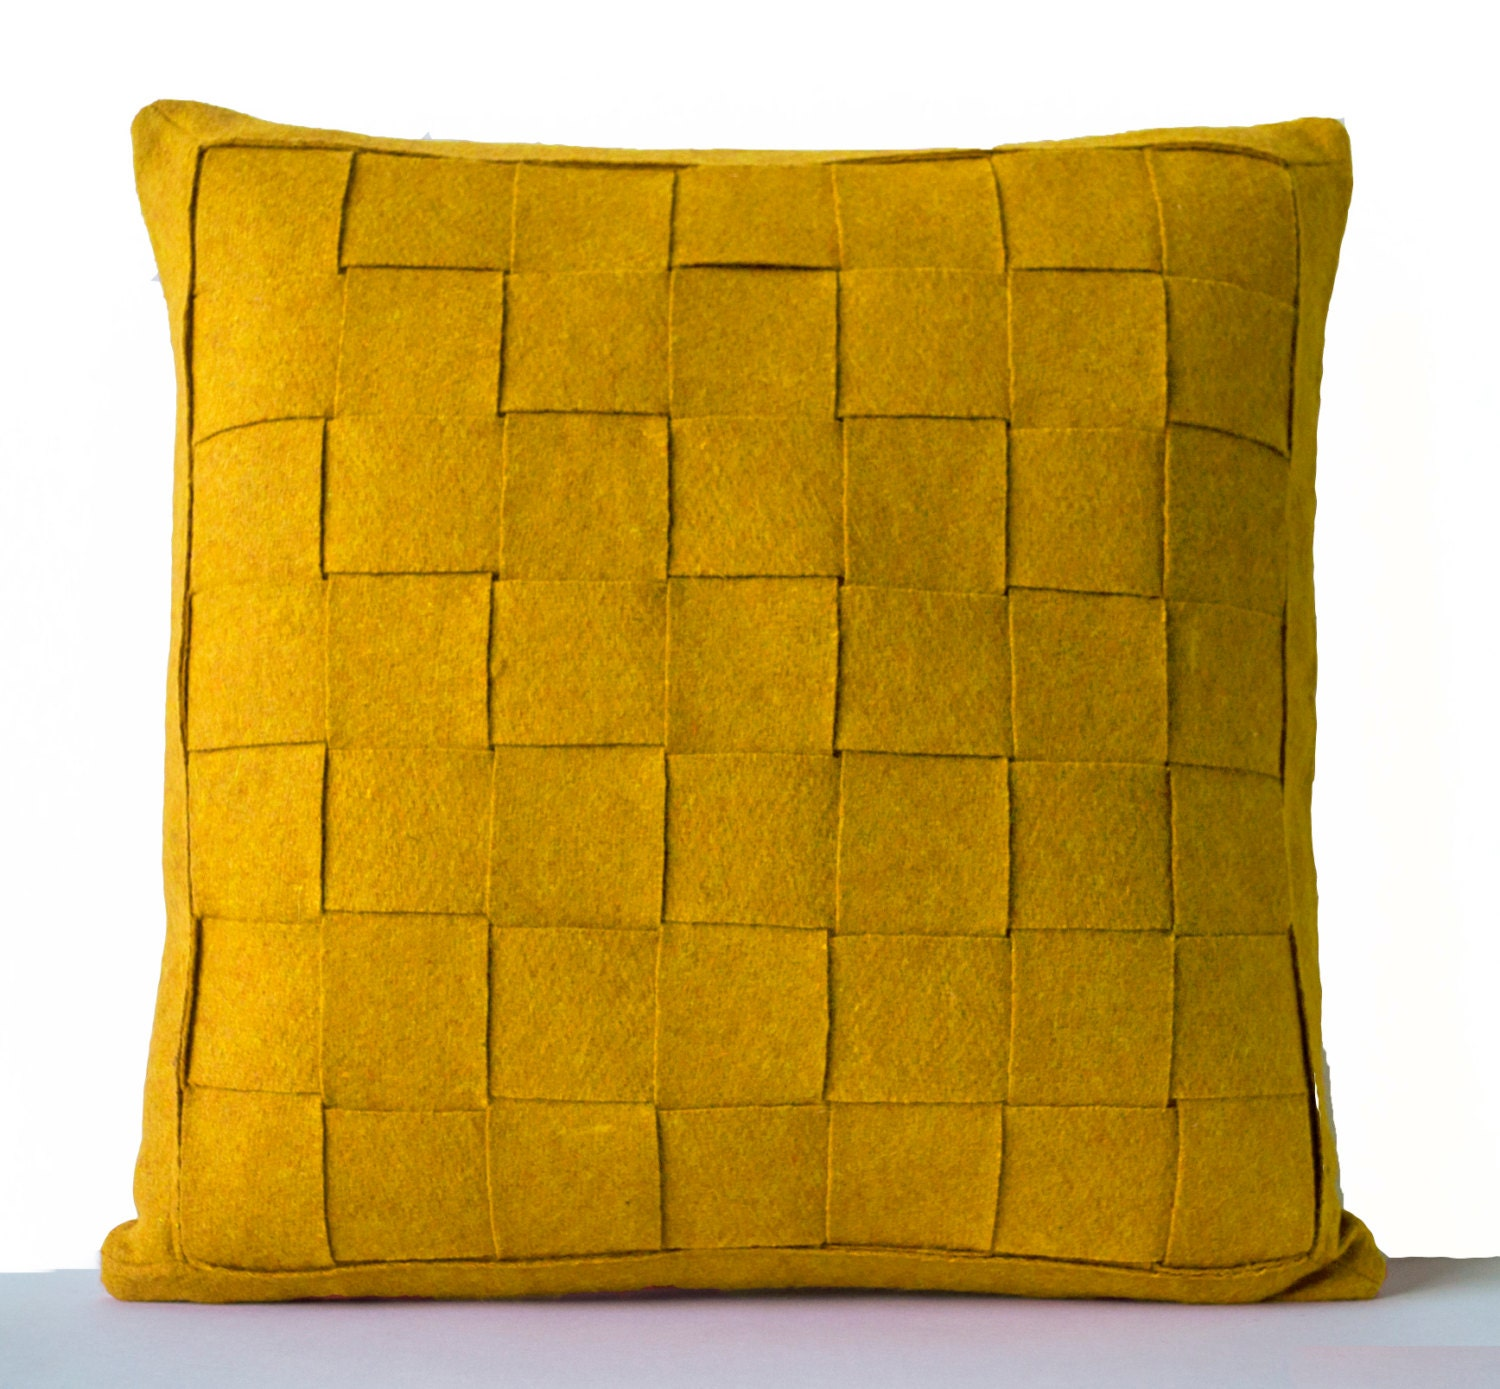 Mustard Pillow Felt Weave Pillows Decorative Throw Pillow